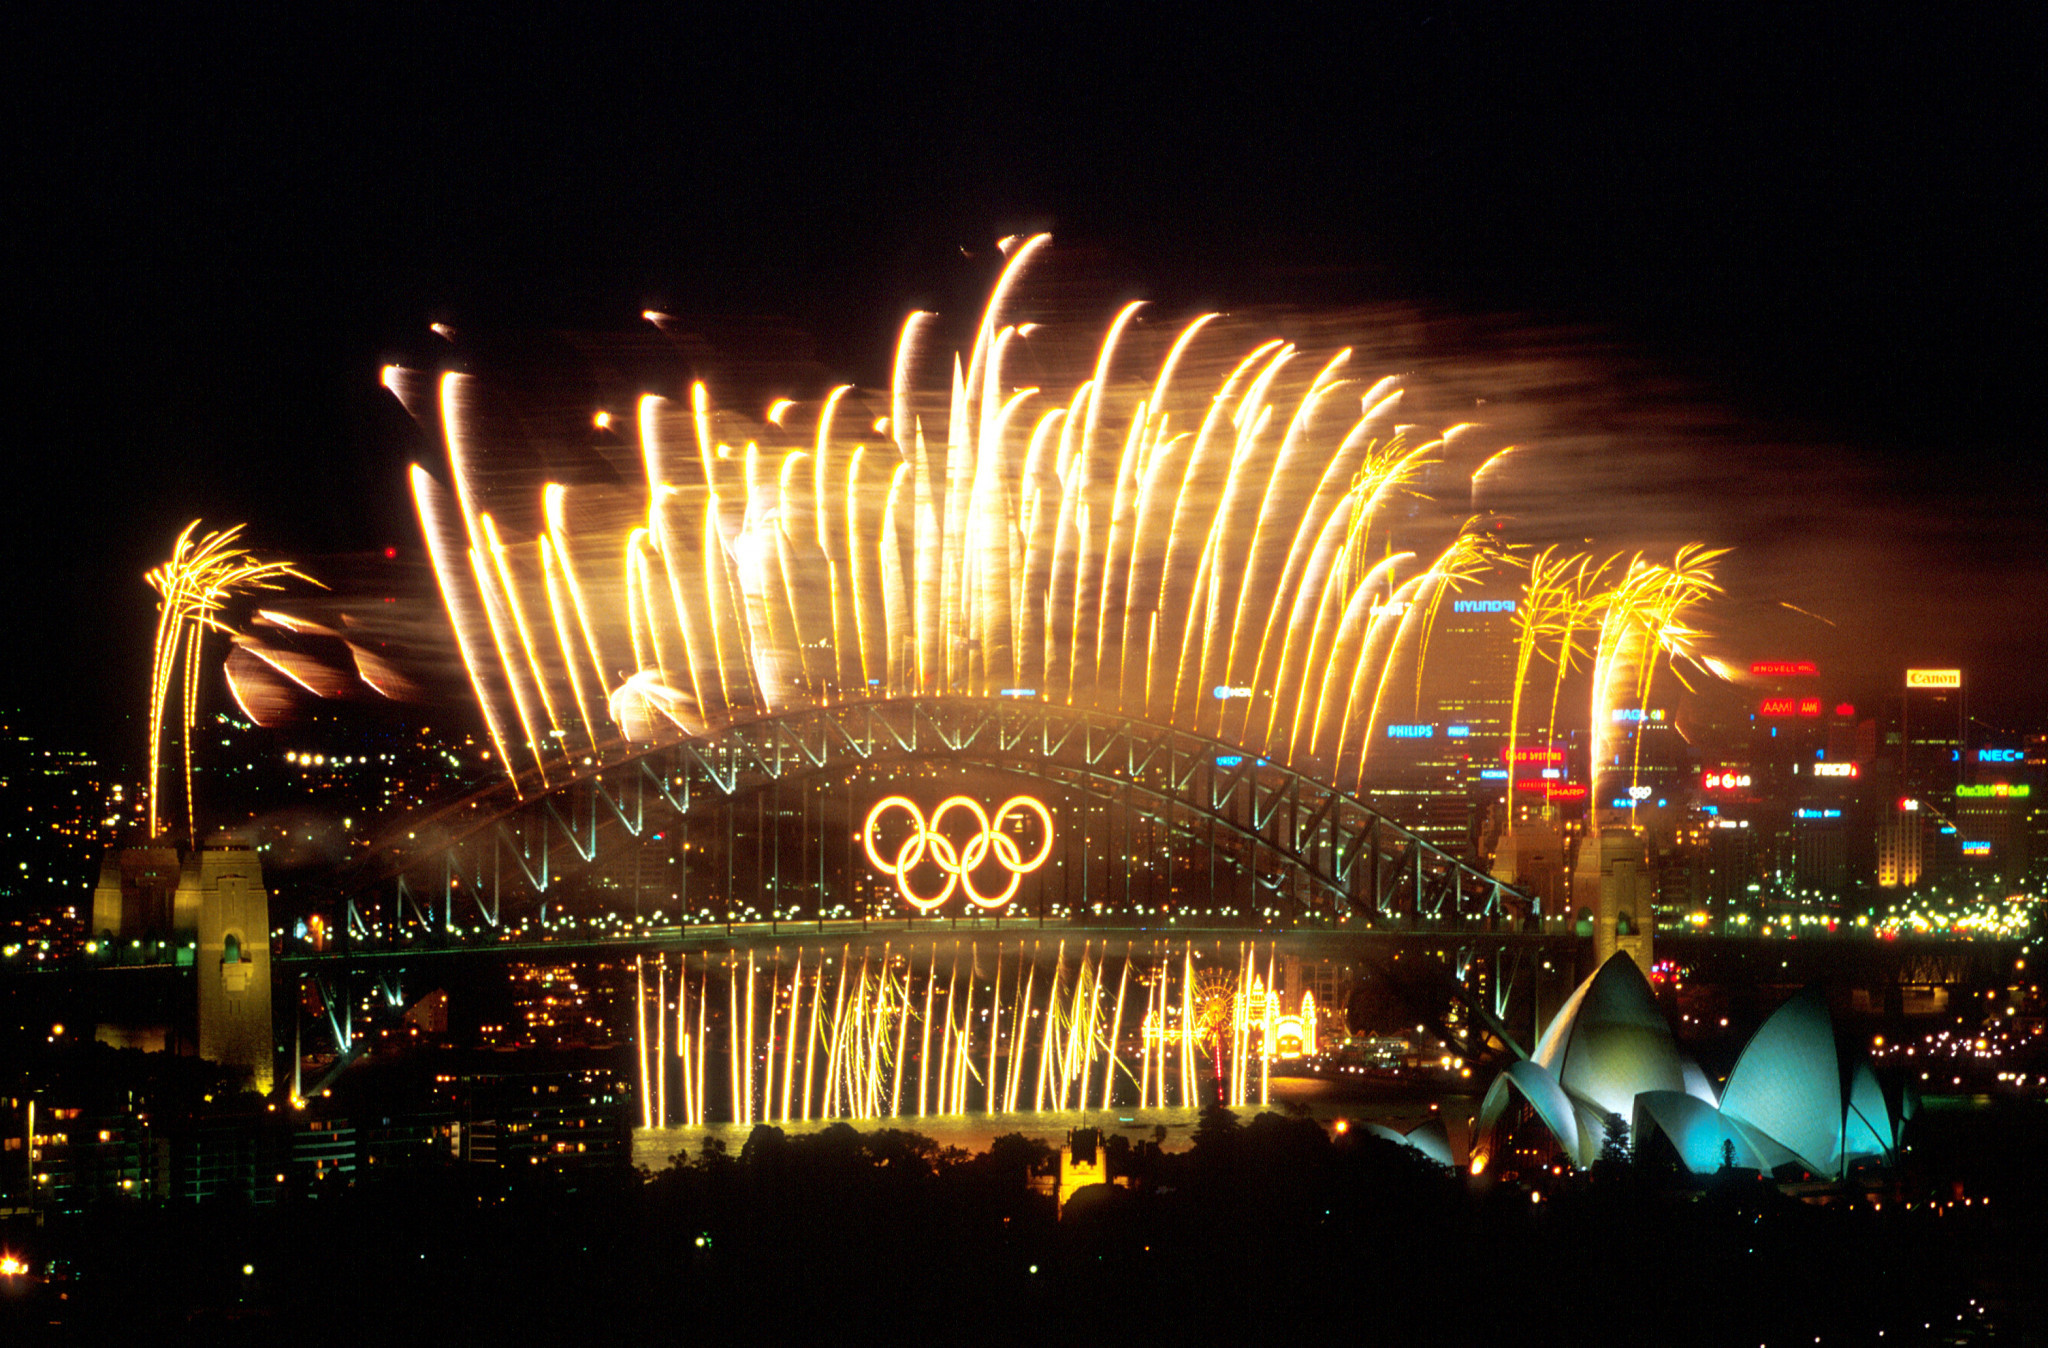 Sydney 2000 is widely regarded as one of the most successful Games ©Getty Images